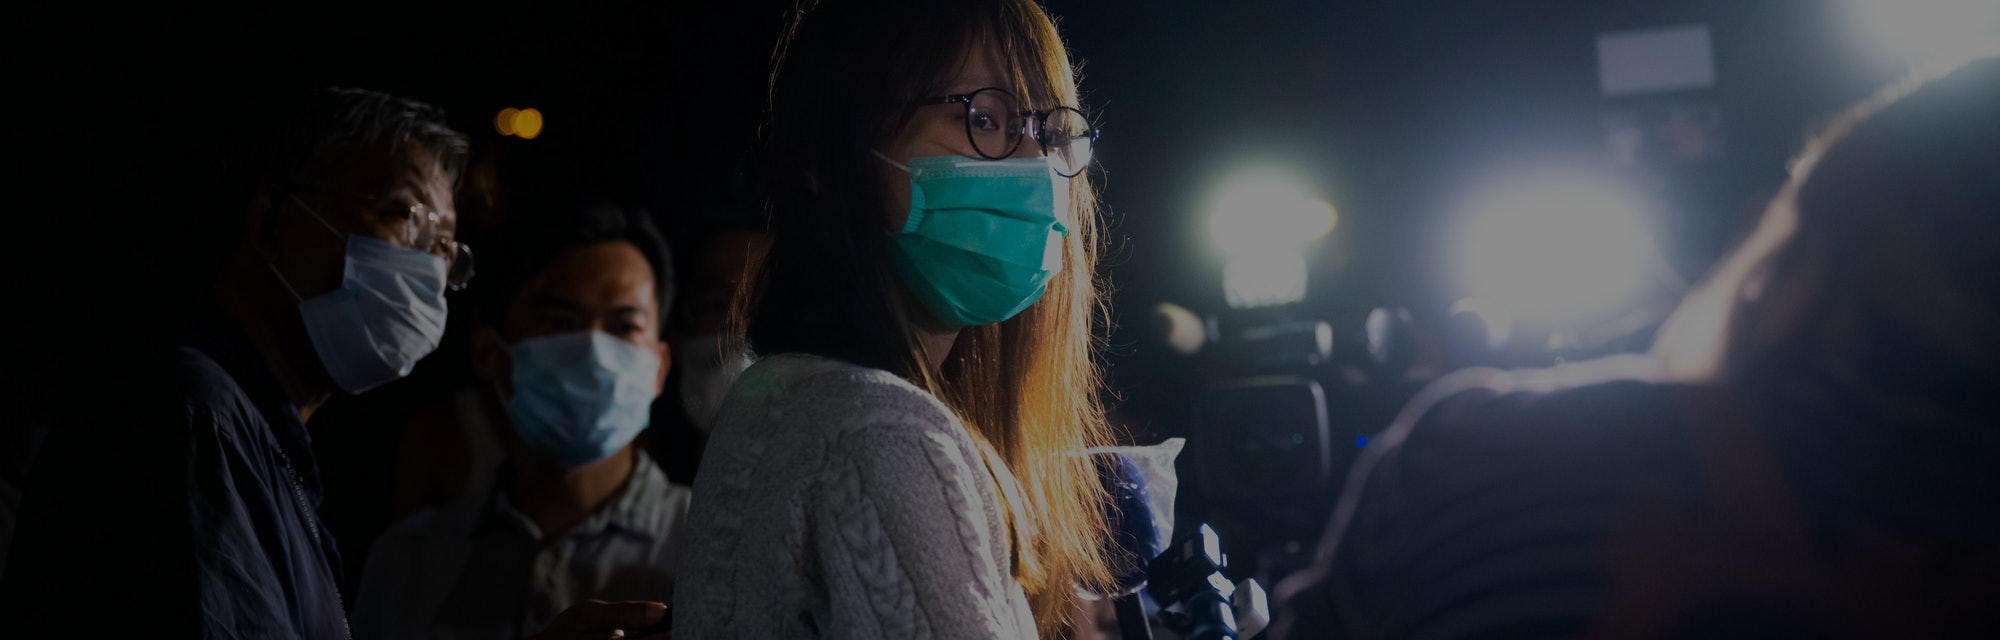 Activist Agnes Chow is lit by harsh lights as she's interviewed in Hong Kong.